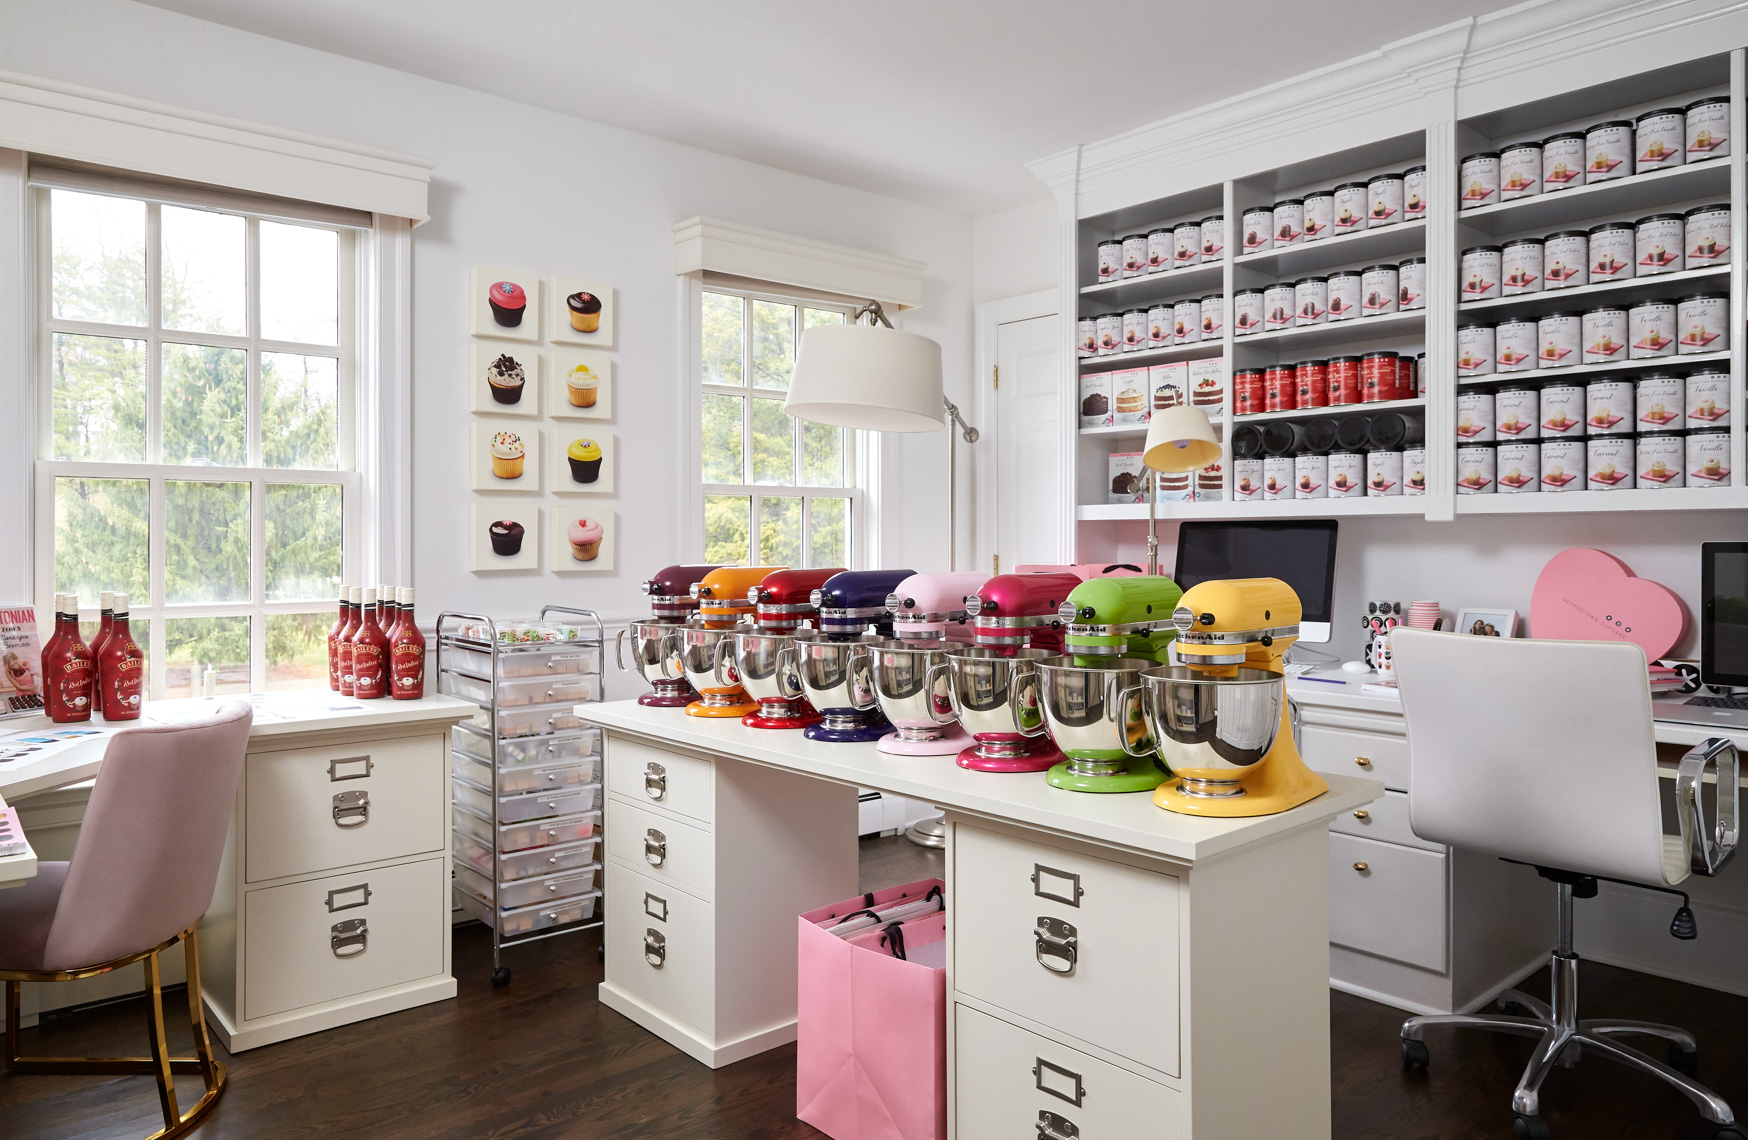 FOOD-Bakery1c-Georgetown-Cupcake